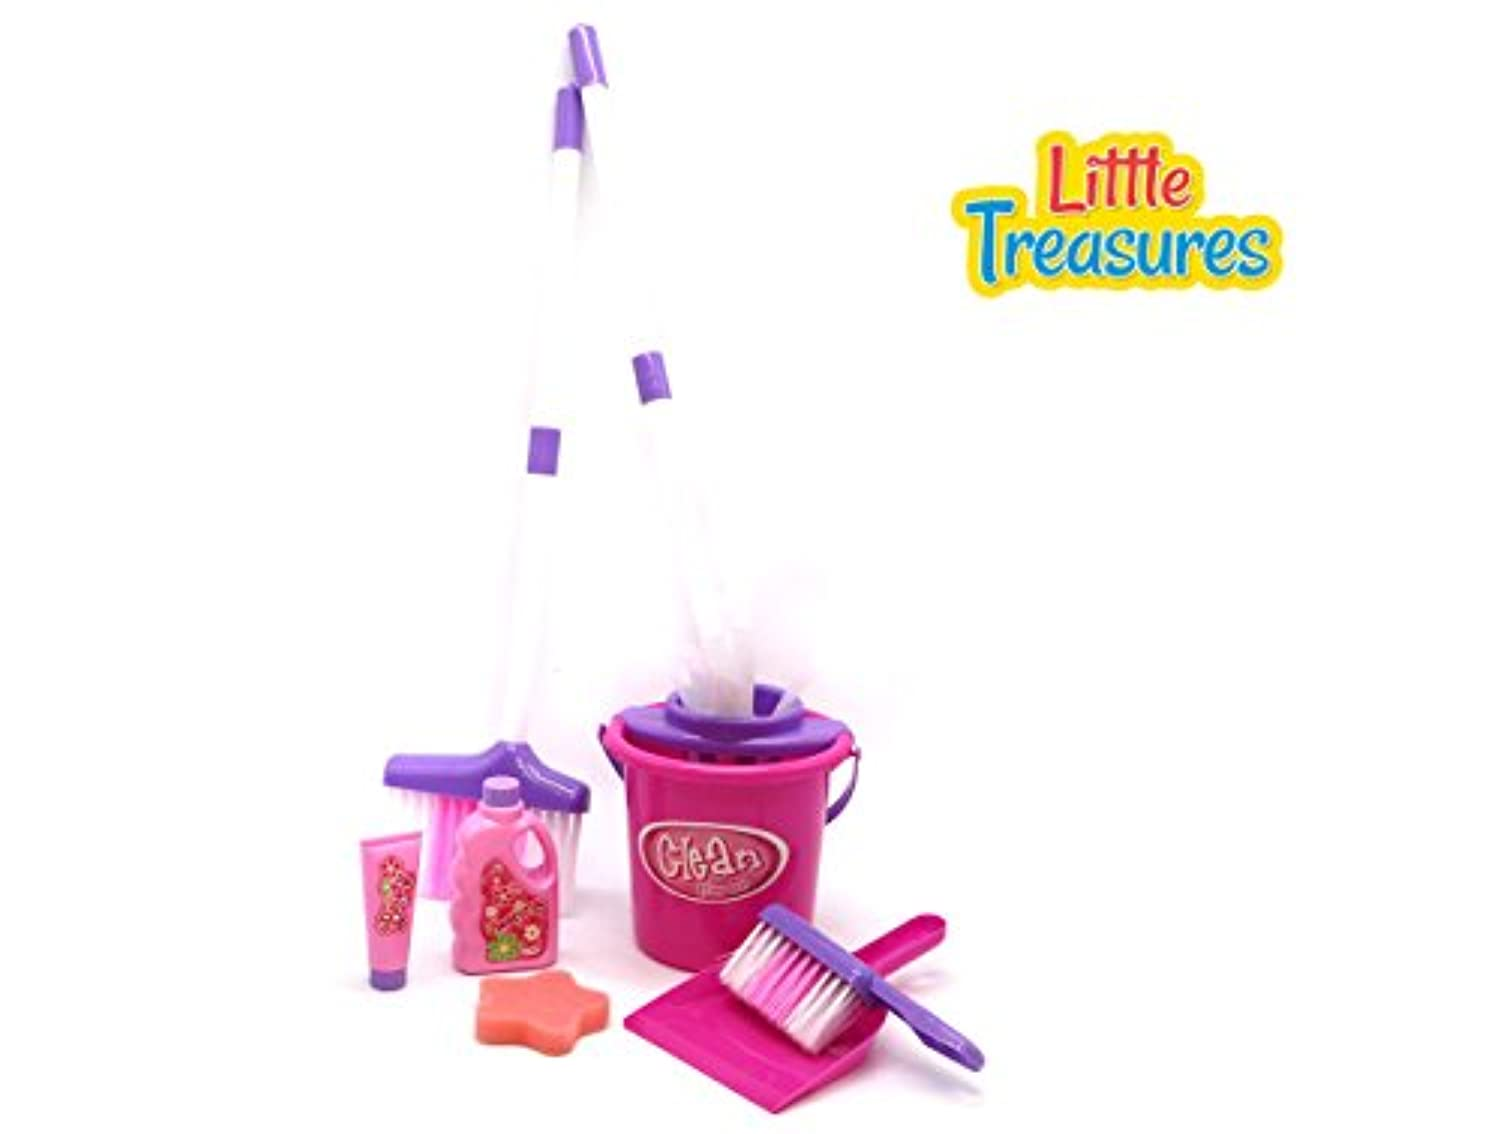 HappyクリーニングPlay Set from Little Treasures – Complete with mop、バケット、ほうき、クリーニングソリューション、フォームパッド、hand-broom、およびDustpan – Playセットfor Children Over 3 and Up